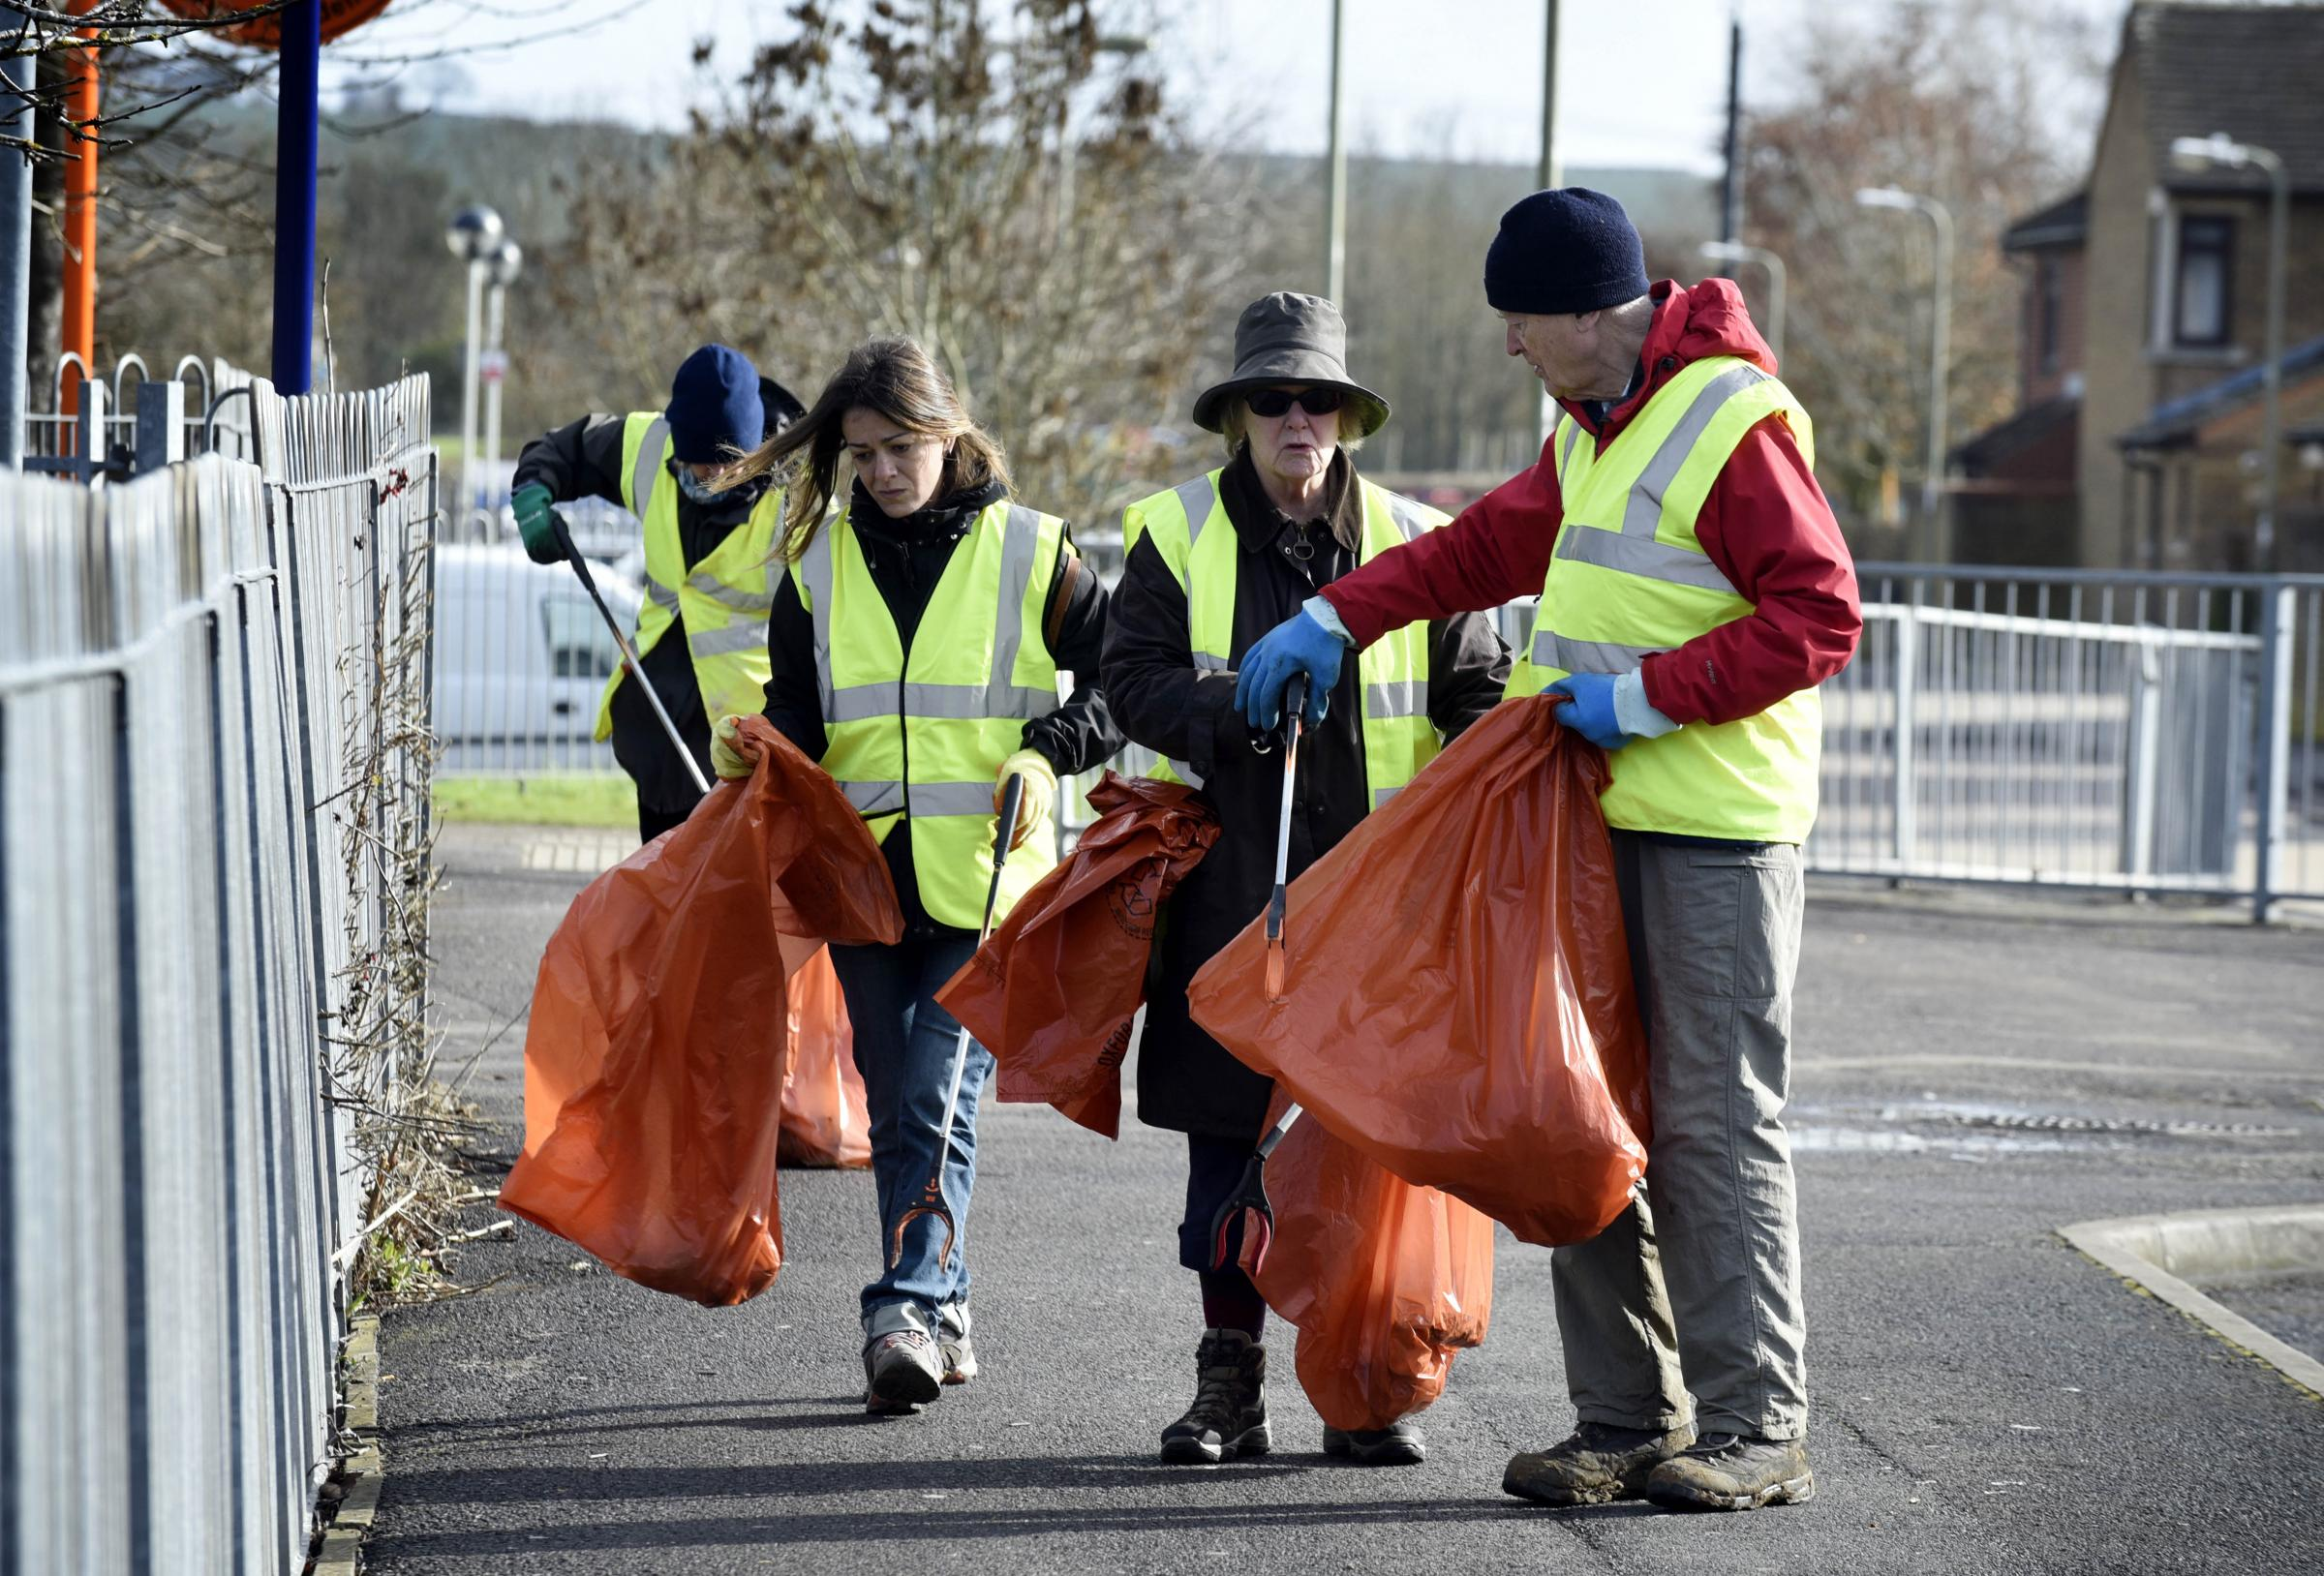 OxClean litter pickers ready to search the streets in and around Dunnock Way for any rubbish..L-R, Cassandra Marino, Rosanne Bostock and Hugo Brunner, President of the Oxford Civic Society, out on street picking litter..